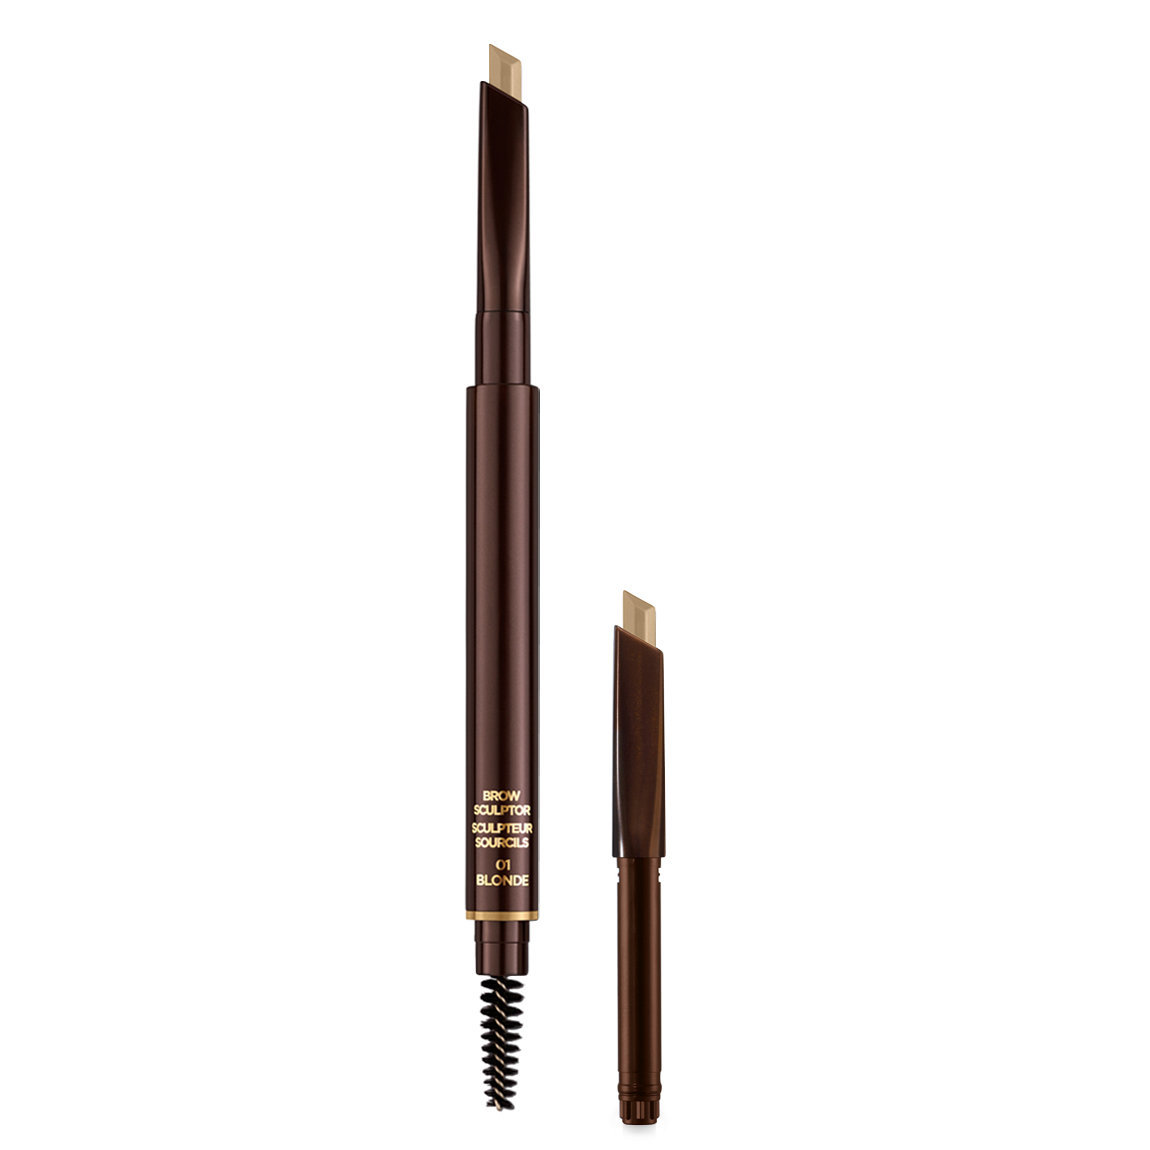 TOM FORD Refillable Brow Sculptor Blonde 01 alternative view 1.